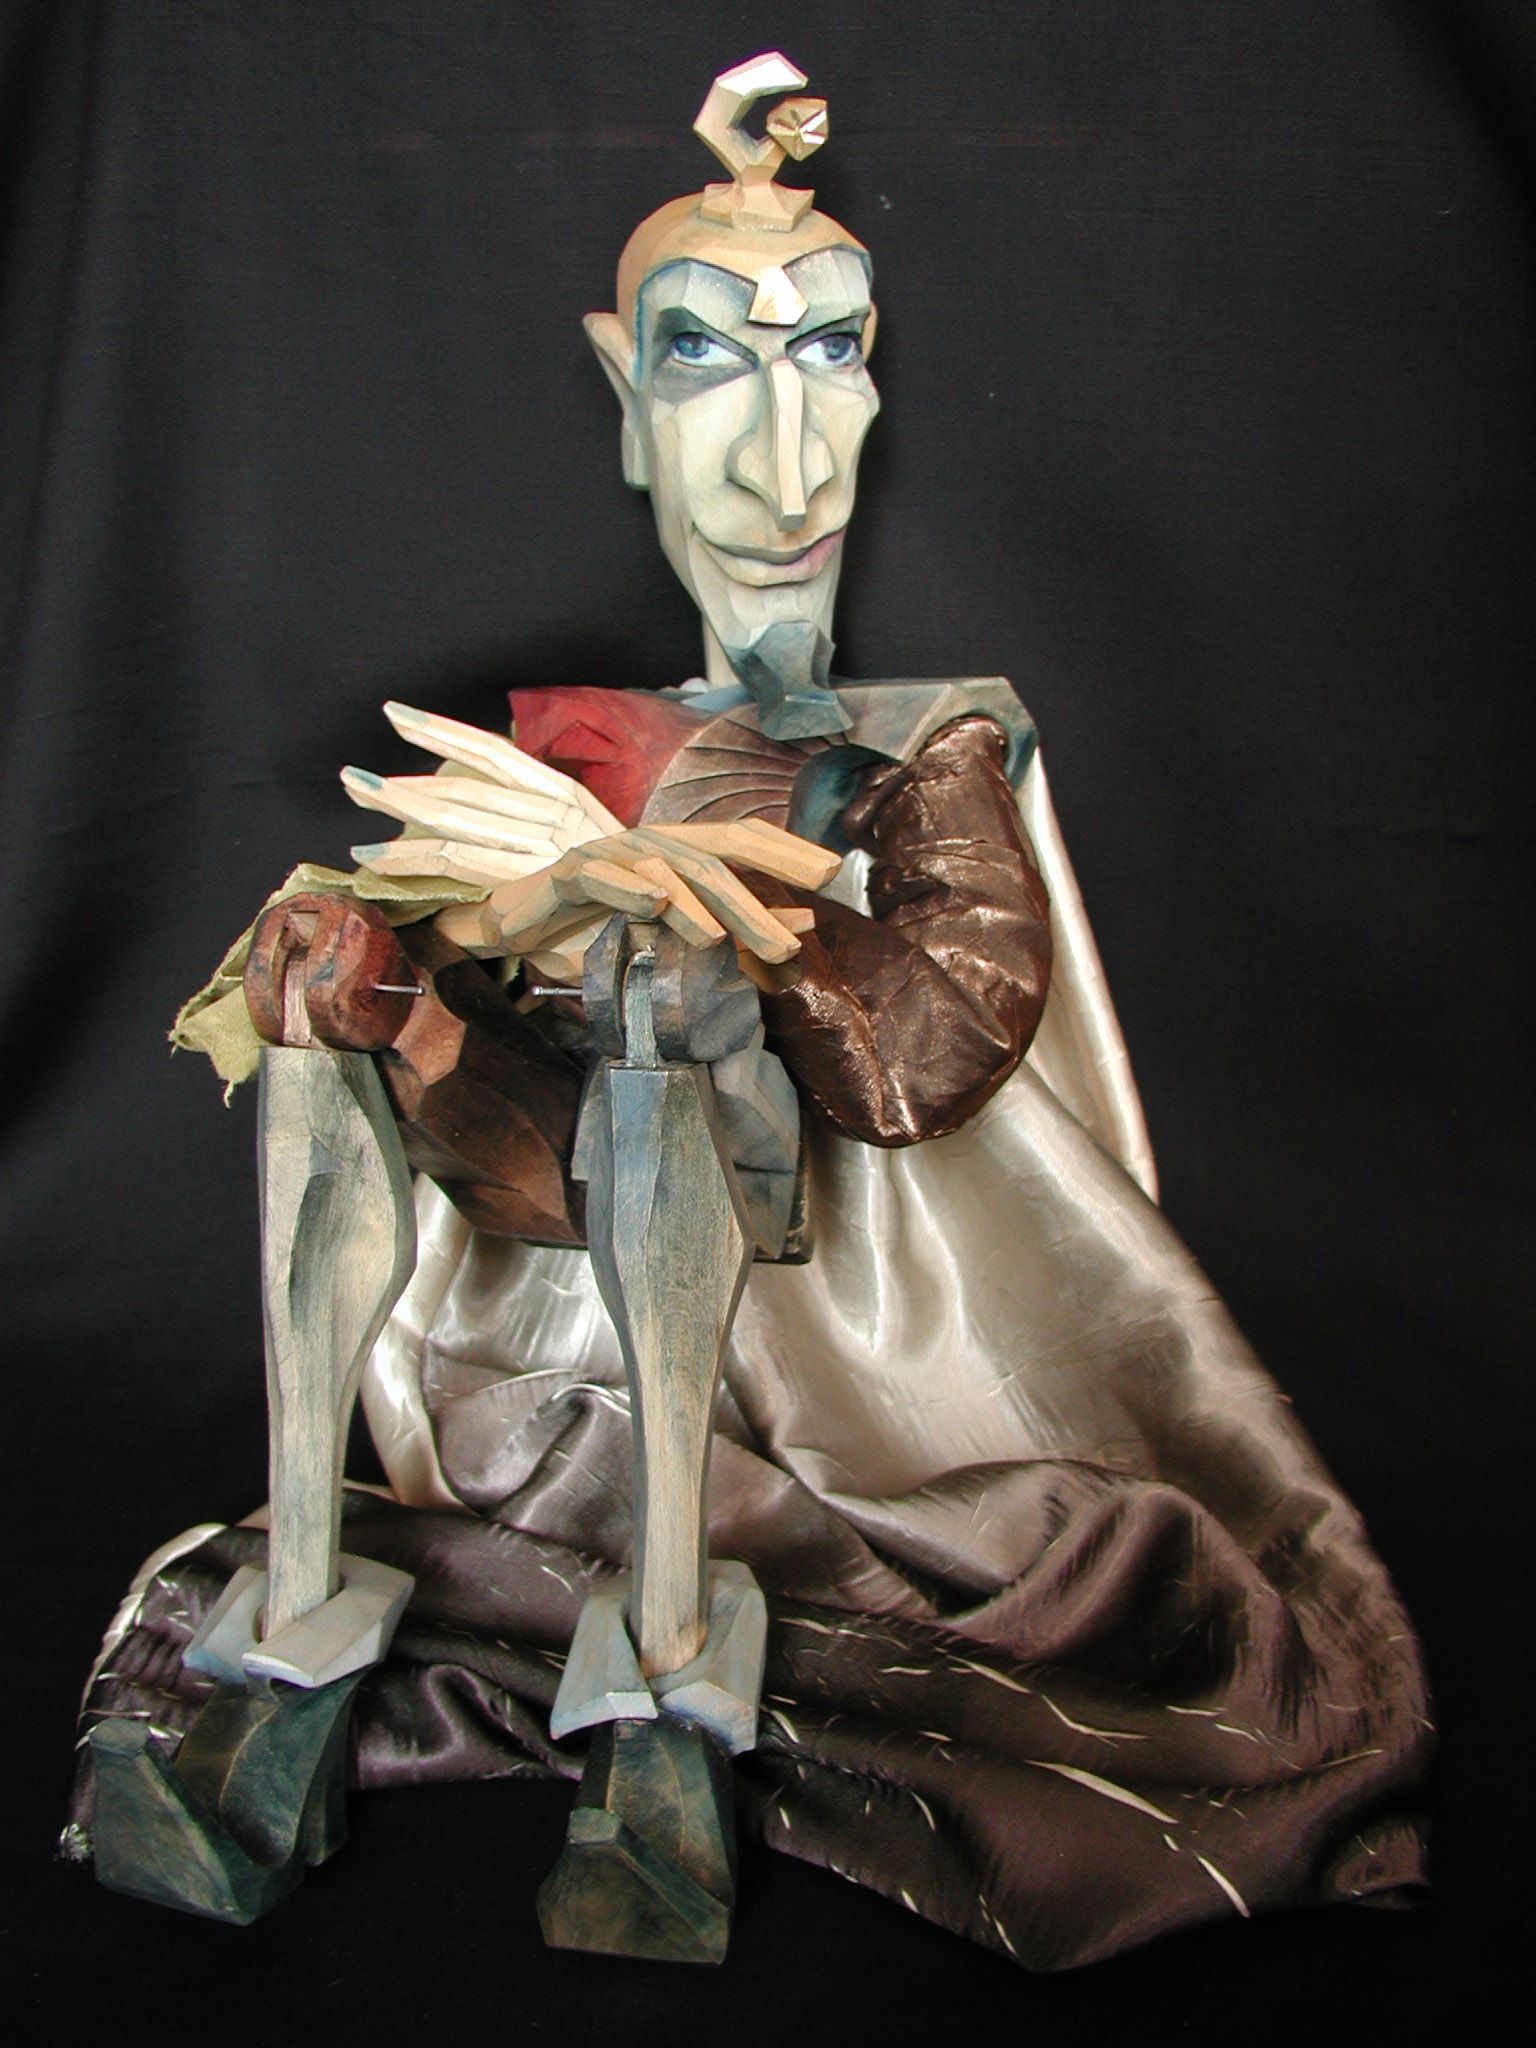 Arte Maya Teatro Tineola Czech Marionettes Teatro Puppets Marionette Puppet Y